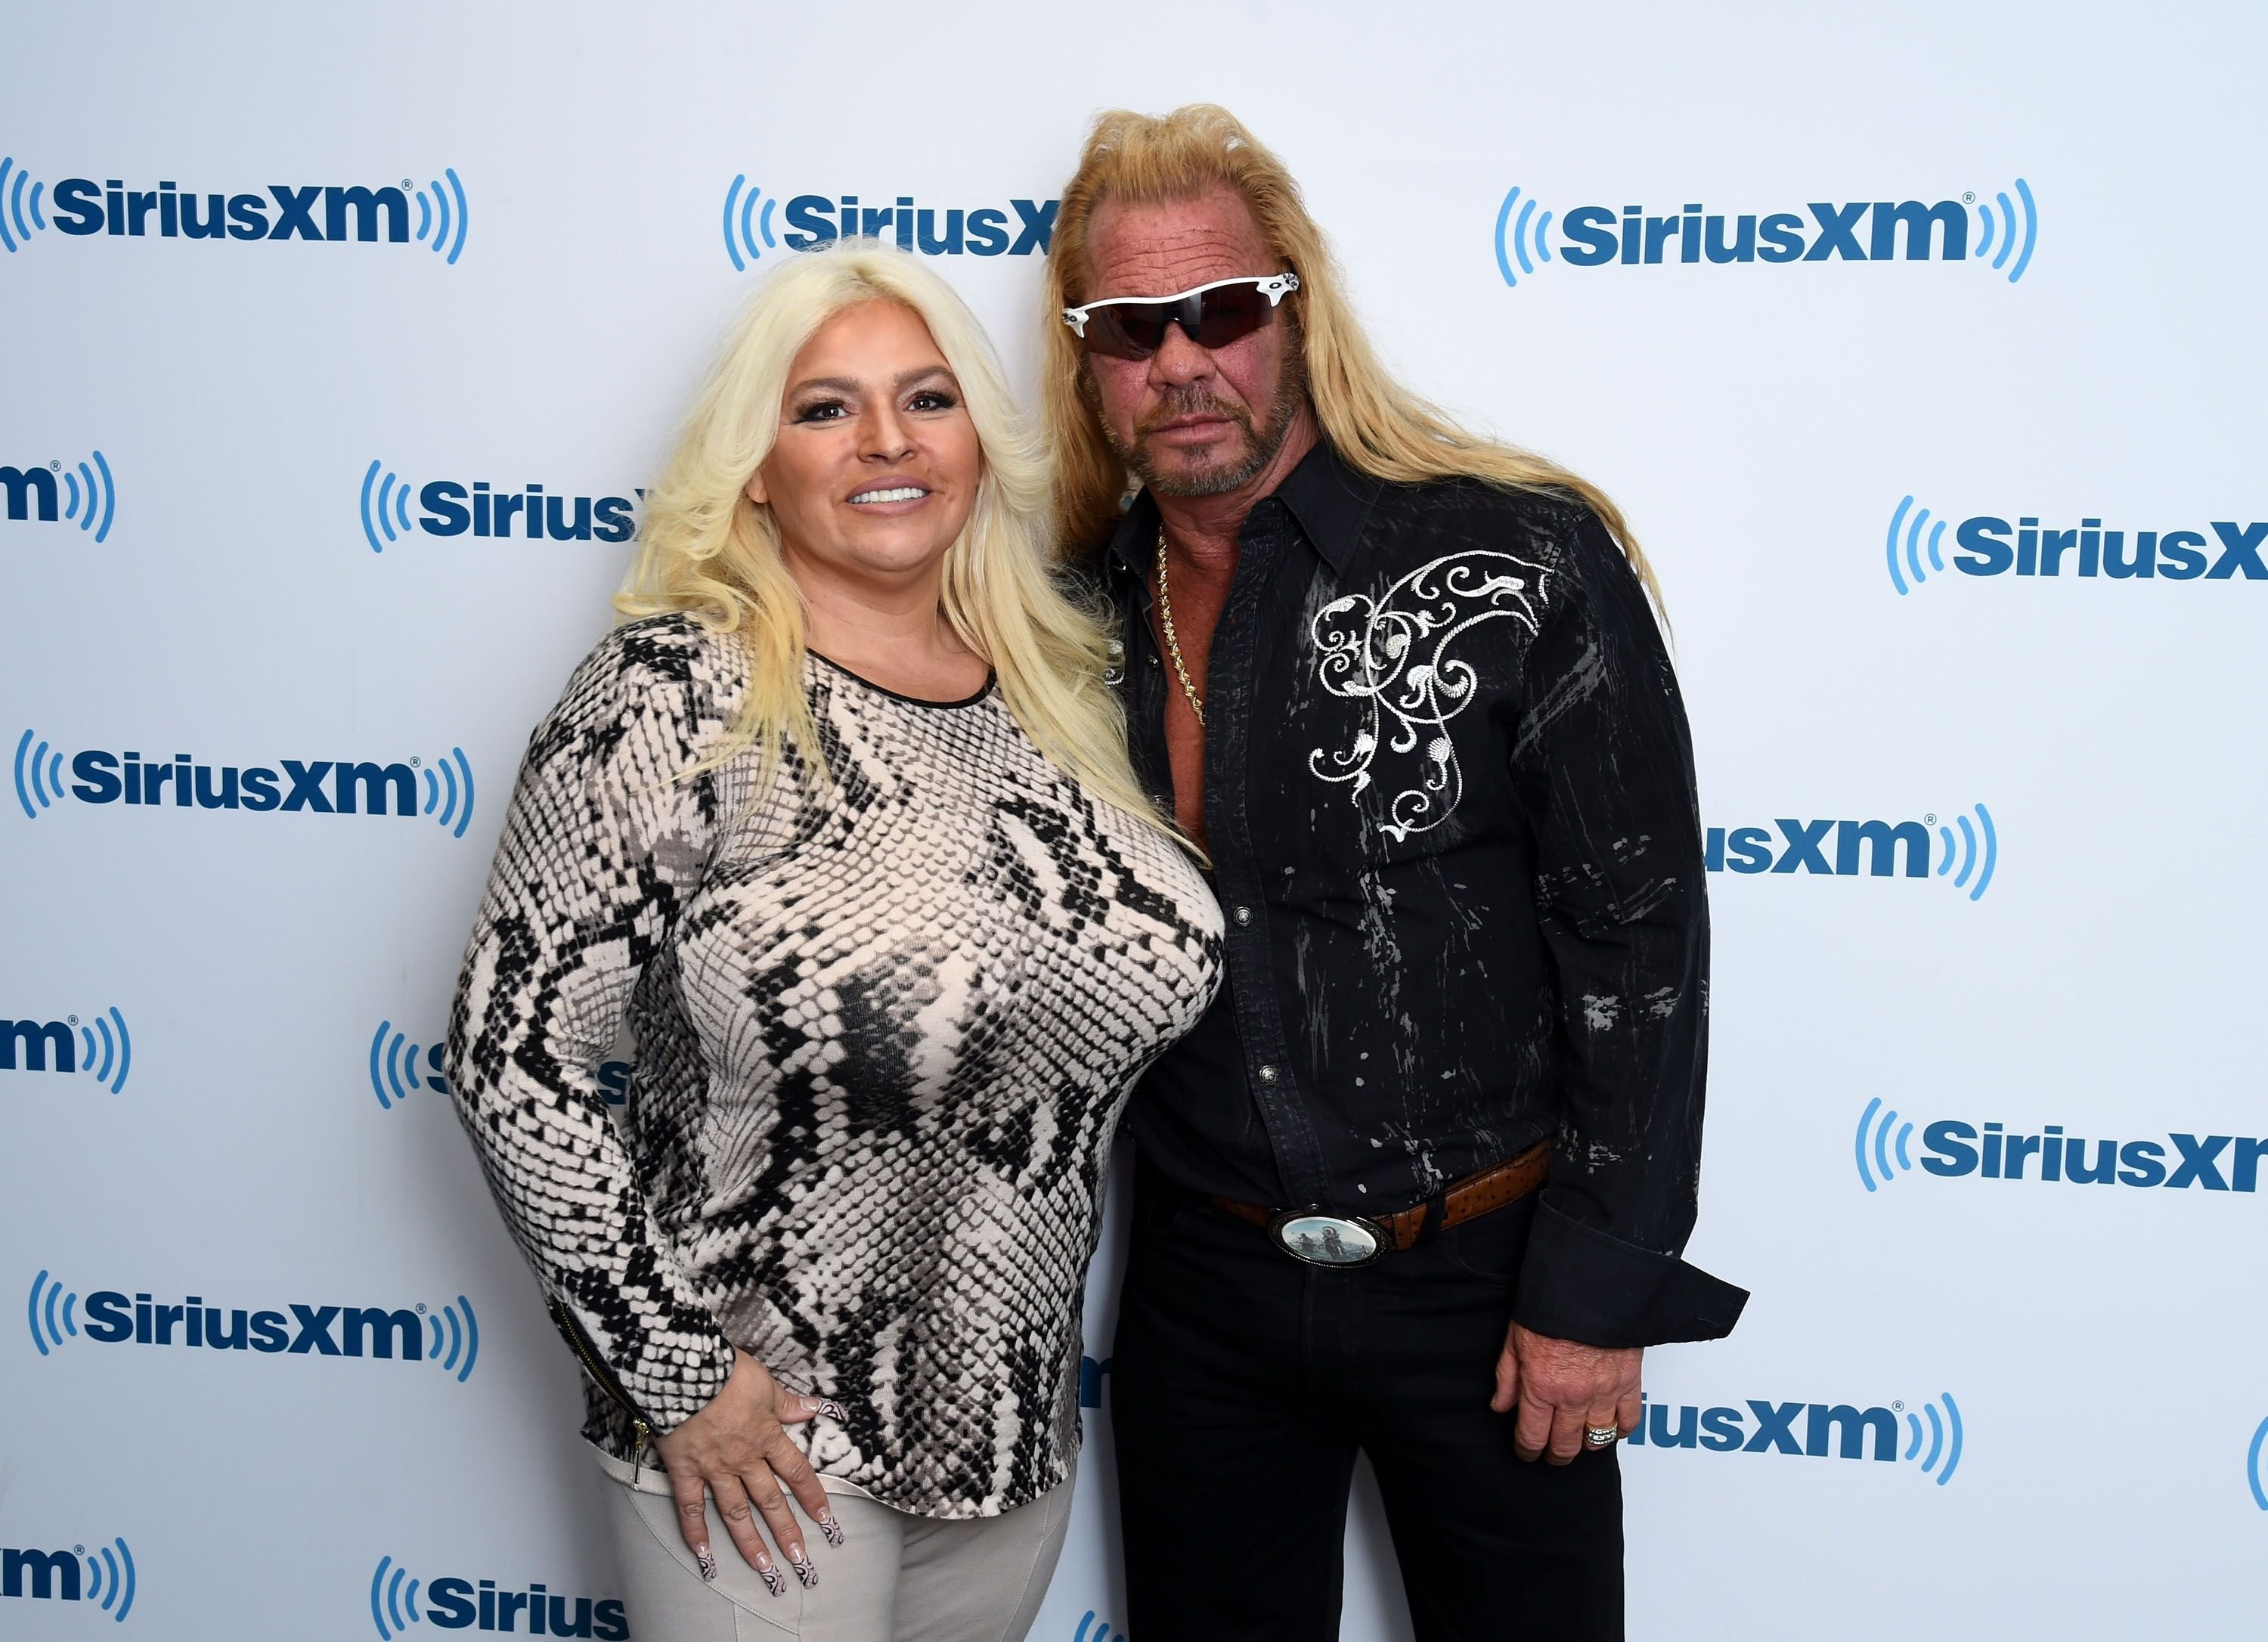 Beth Chapman and Dog the Bounty Hunter, Duane Chapman at the SiriusXM Studios on April 24, 2015 | Photo: Getty Images